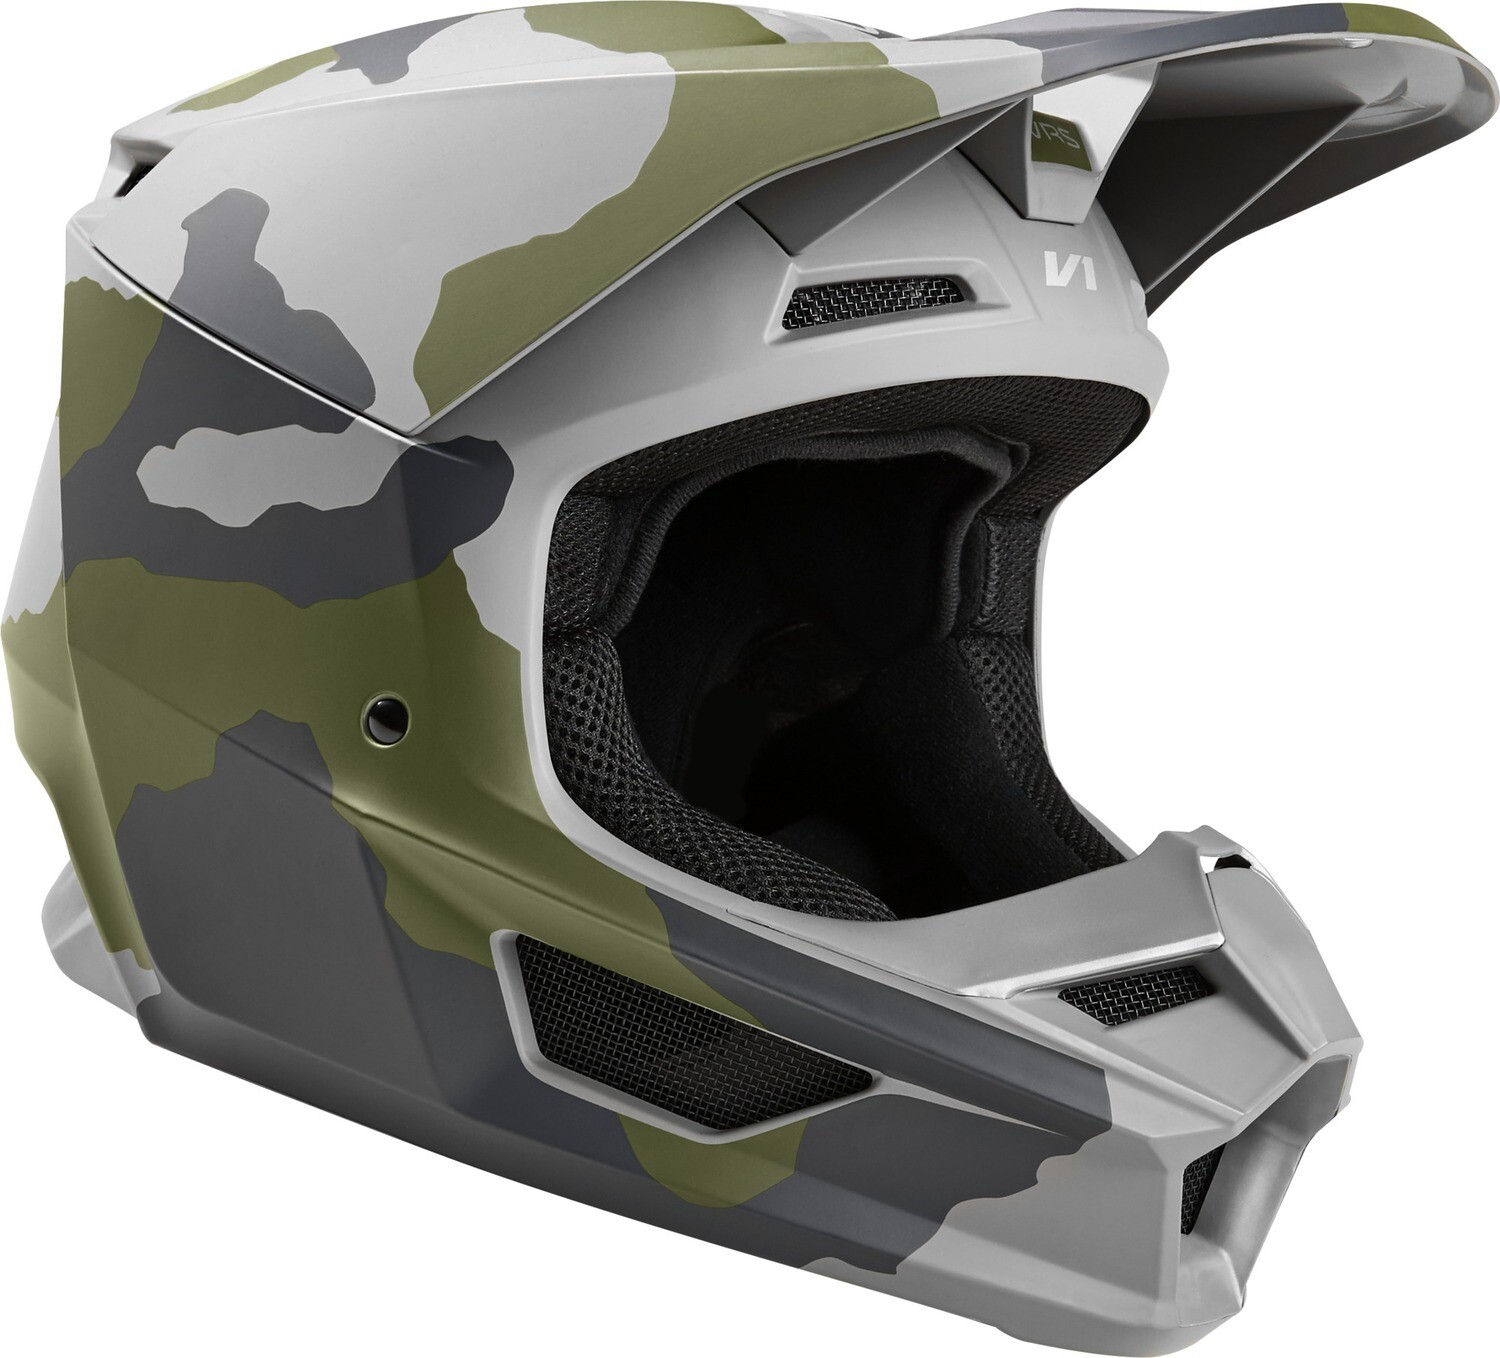 CASCO V1 YOUTH PRZM SE CAM